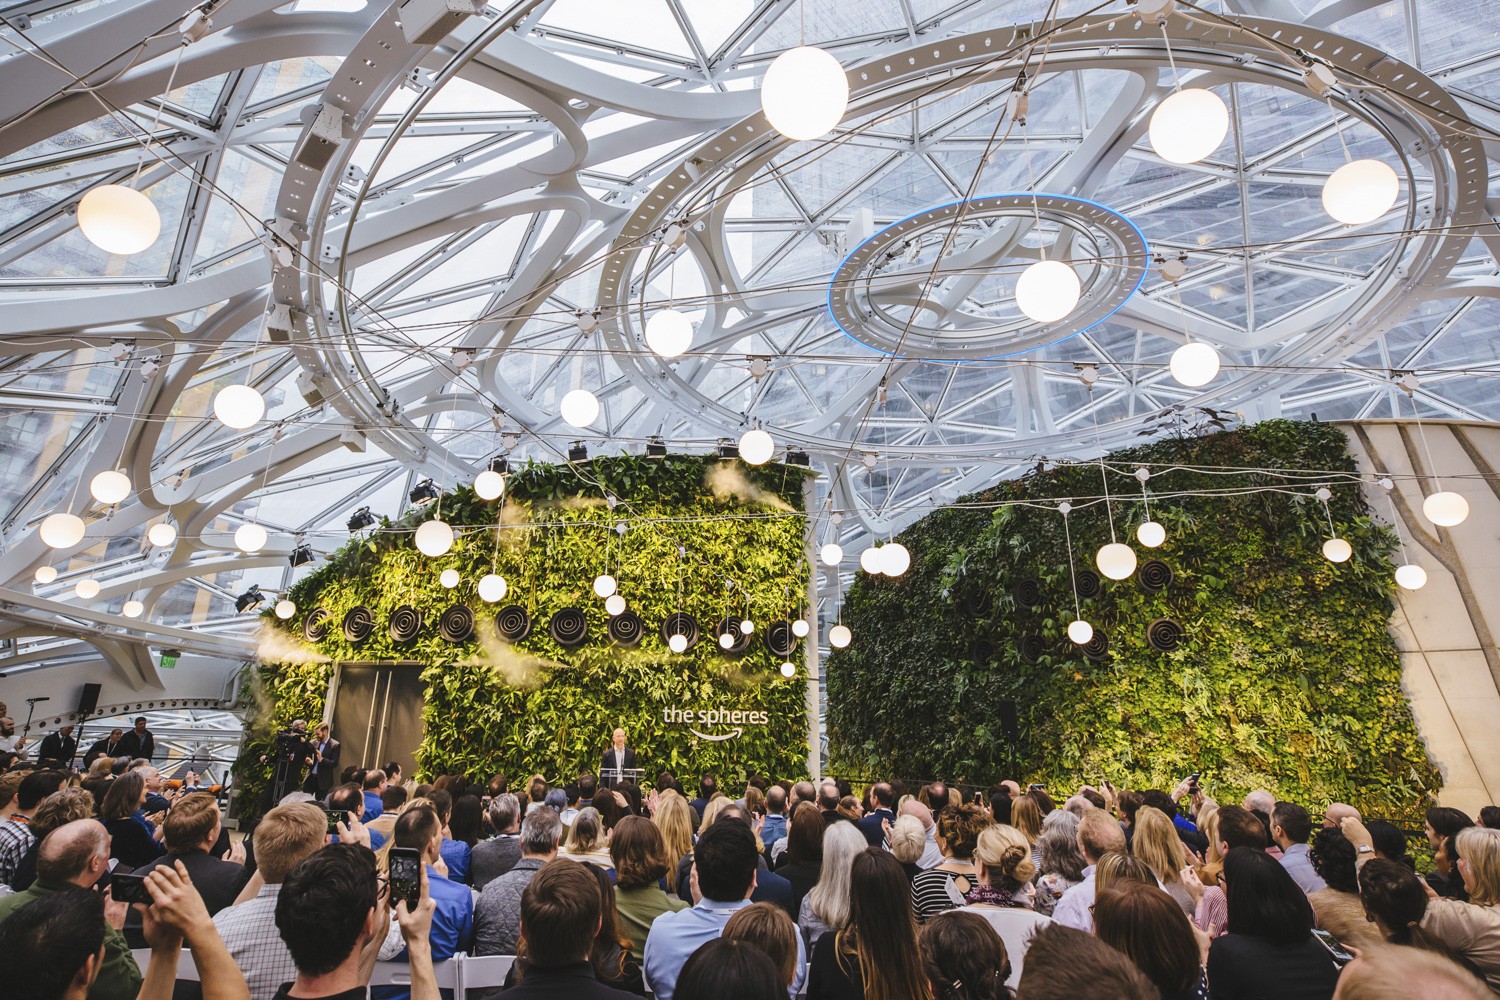 Tour of Amazon Spheres and Happy Hour  ASU Events